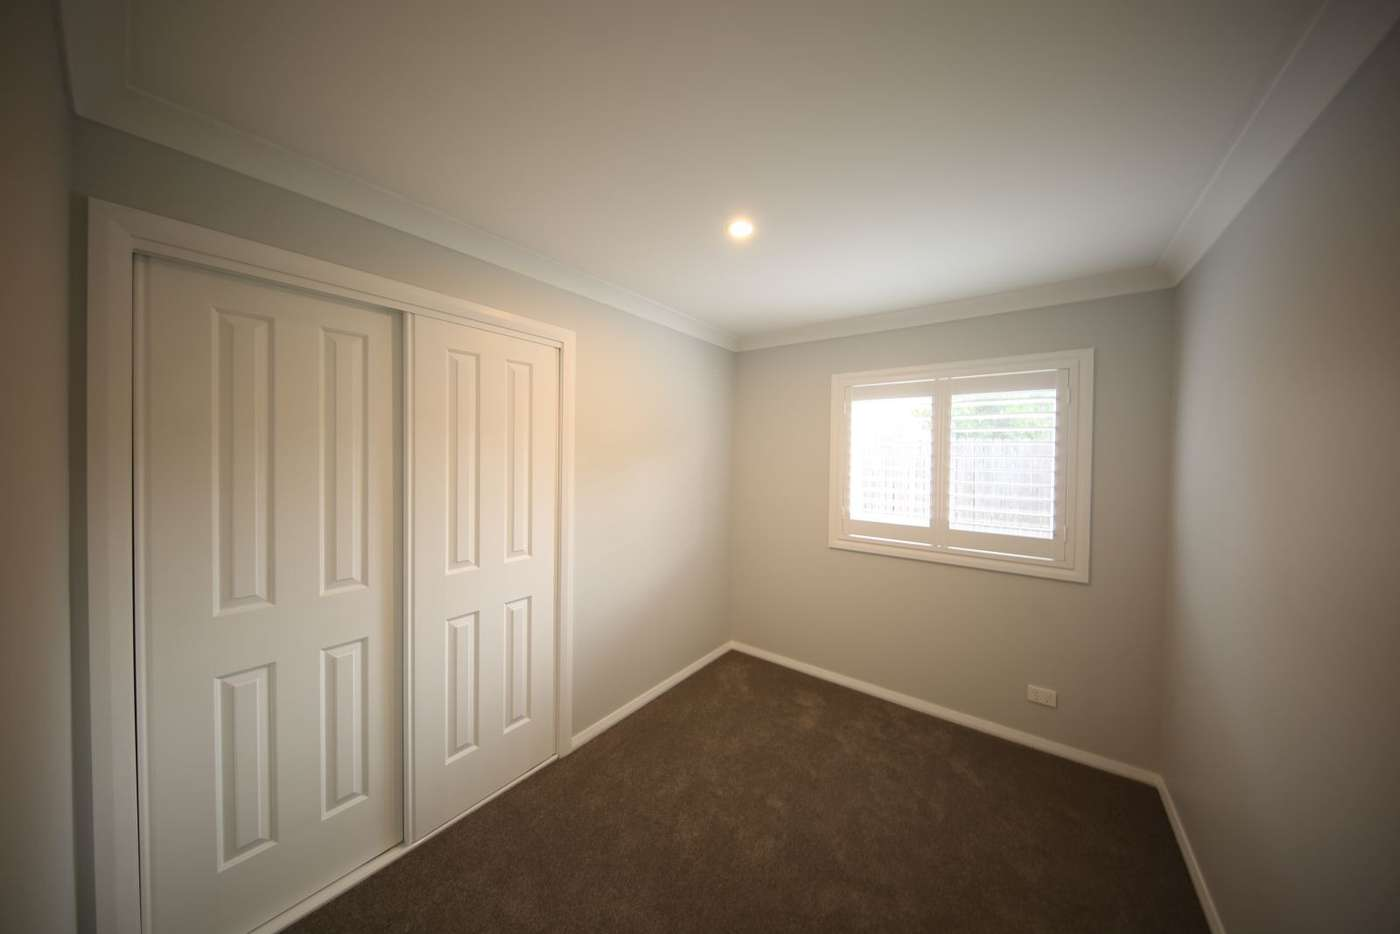 Sixth view of Homely villa listing, 2/ 13 Milne St, Tahmoor NSW 2573